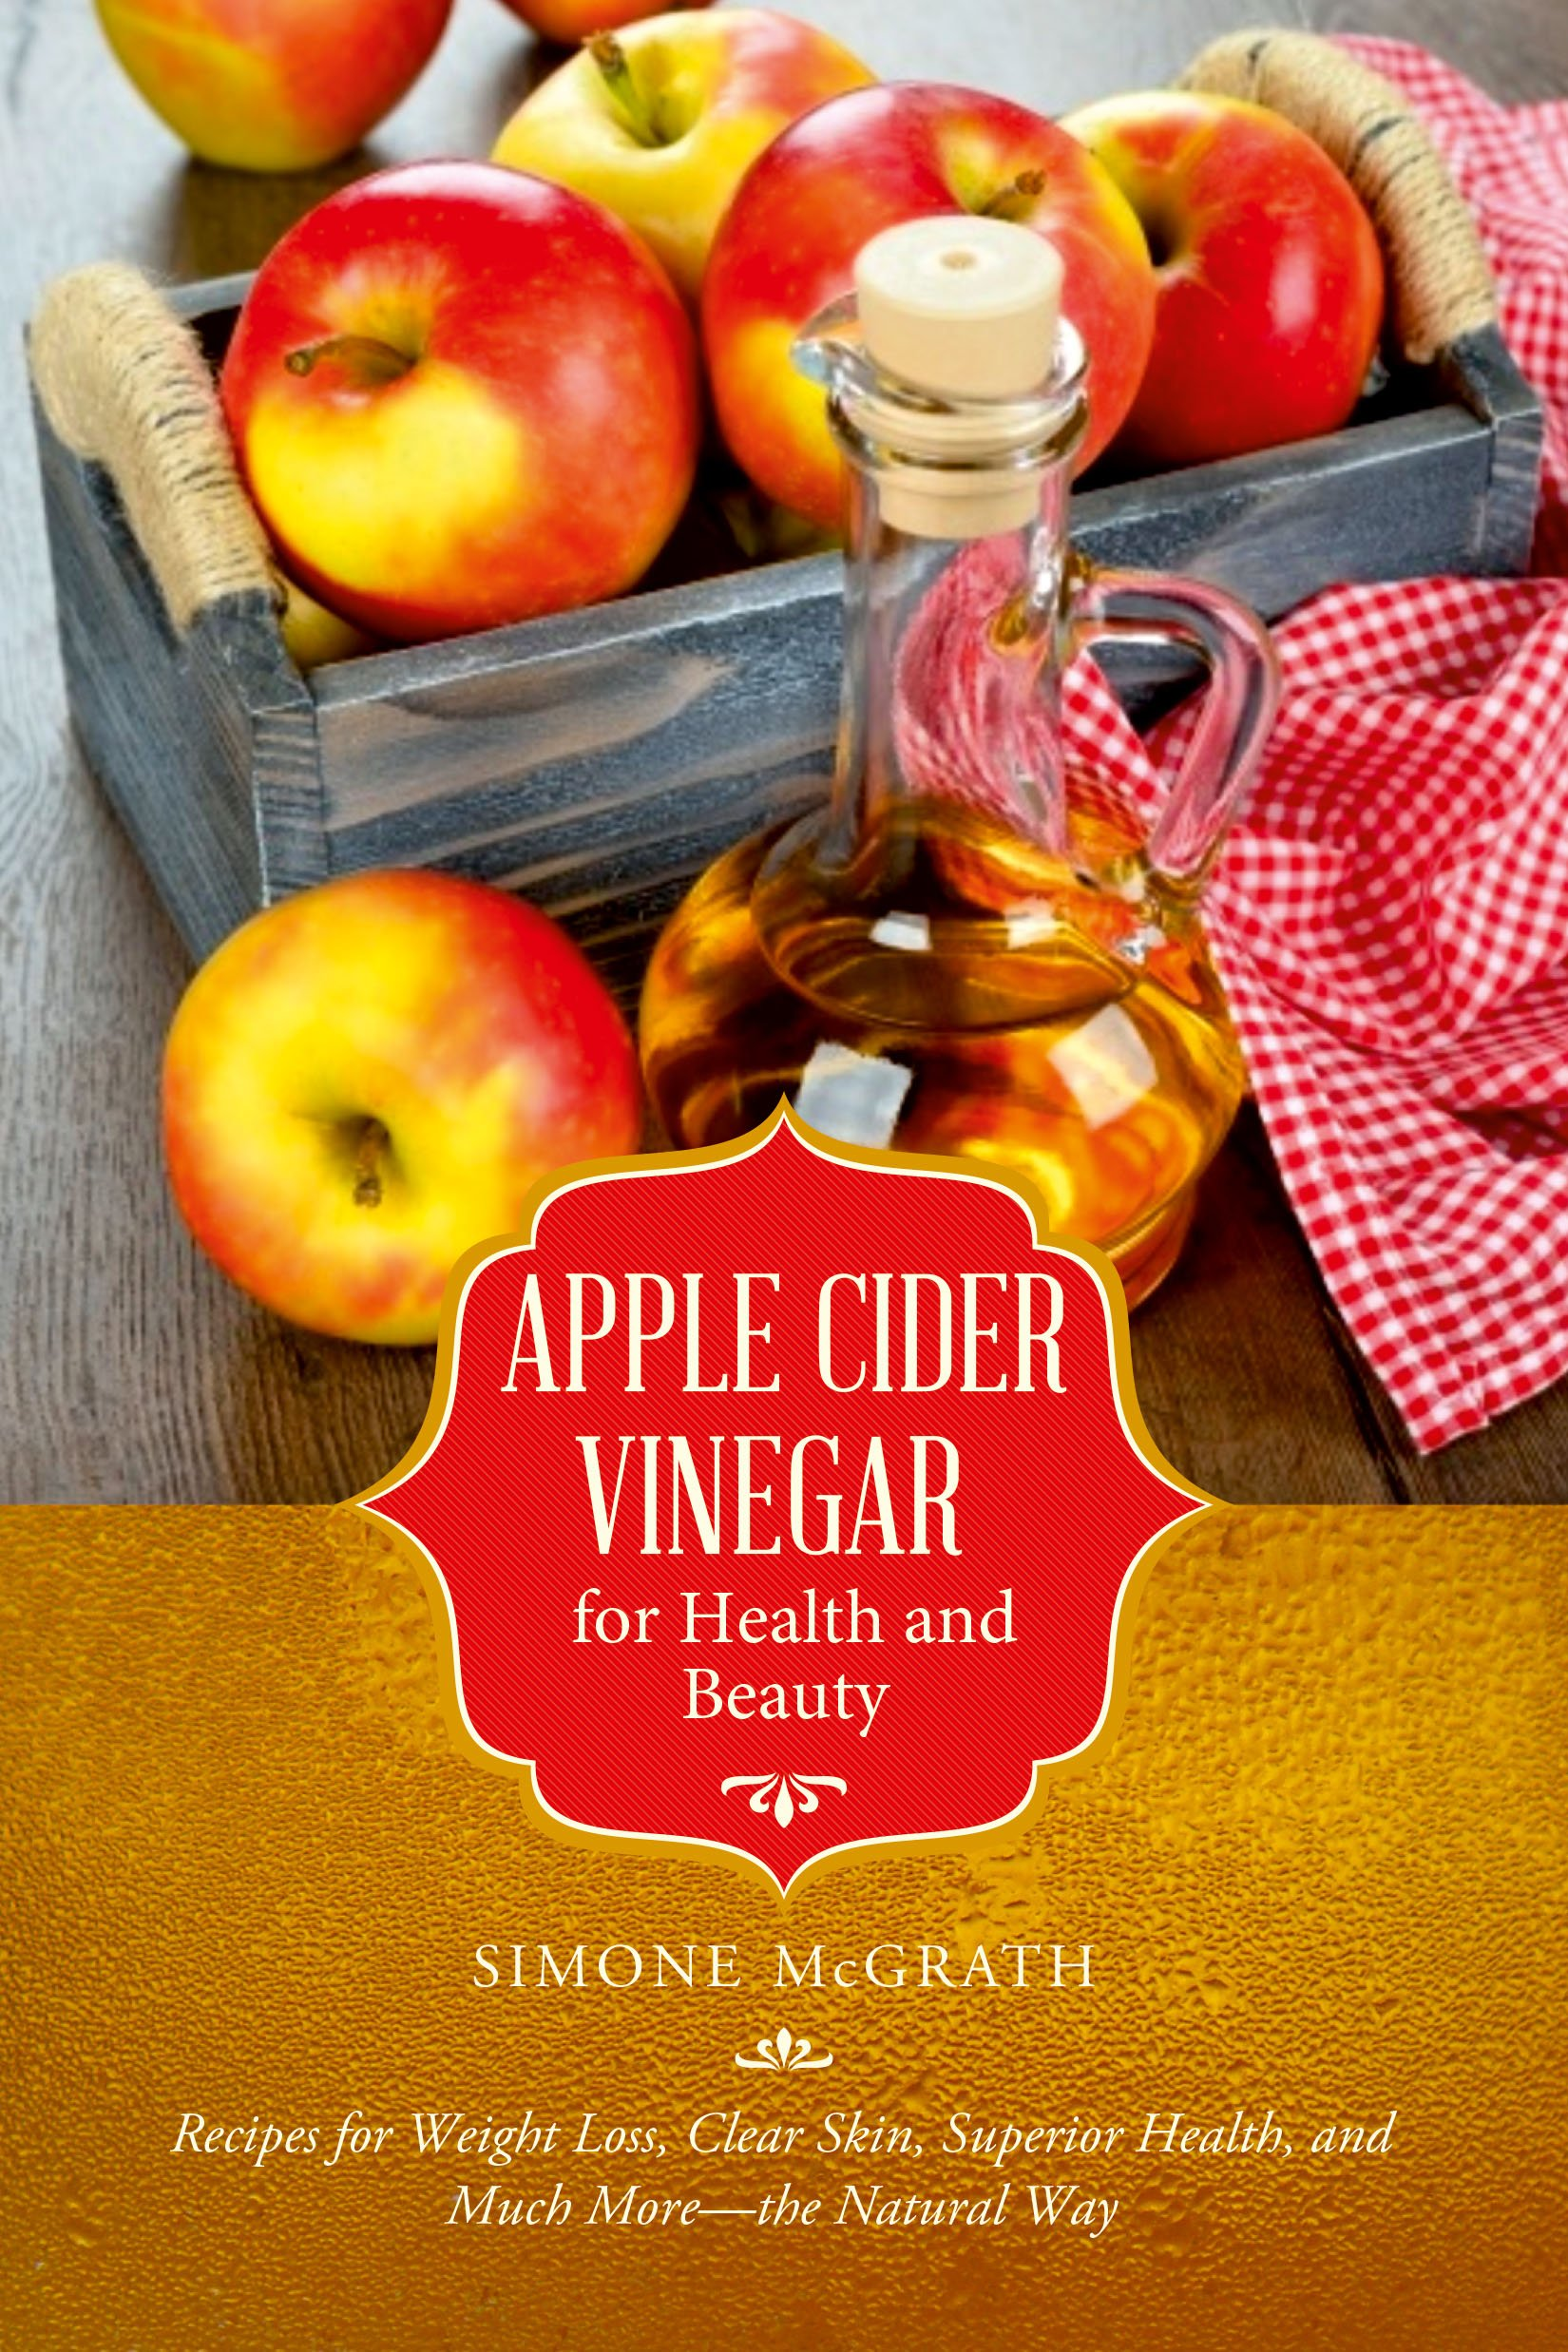 Apple Cider Vinegar for Health and Beauty: Recipes for Weight Loss, Clear Skin, Superior Health, and Much More – the Natural Way